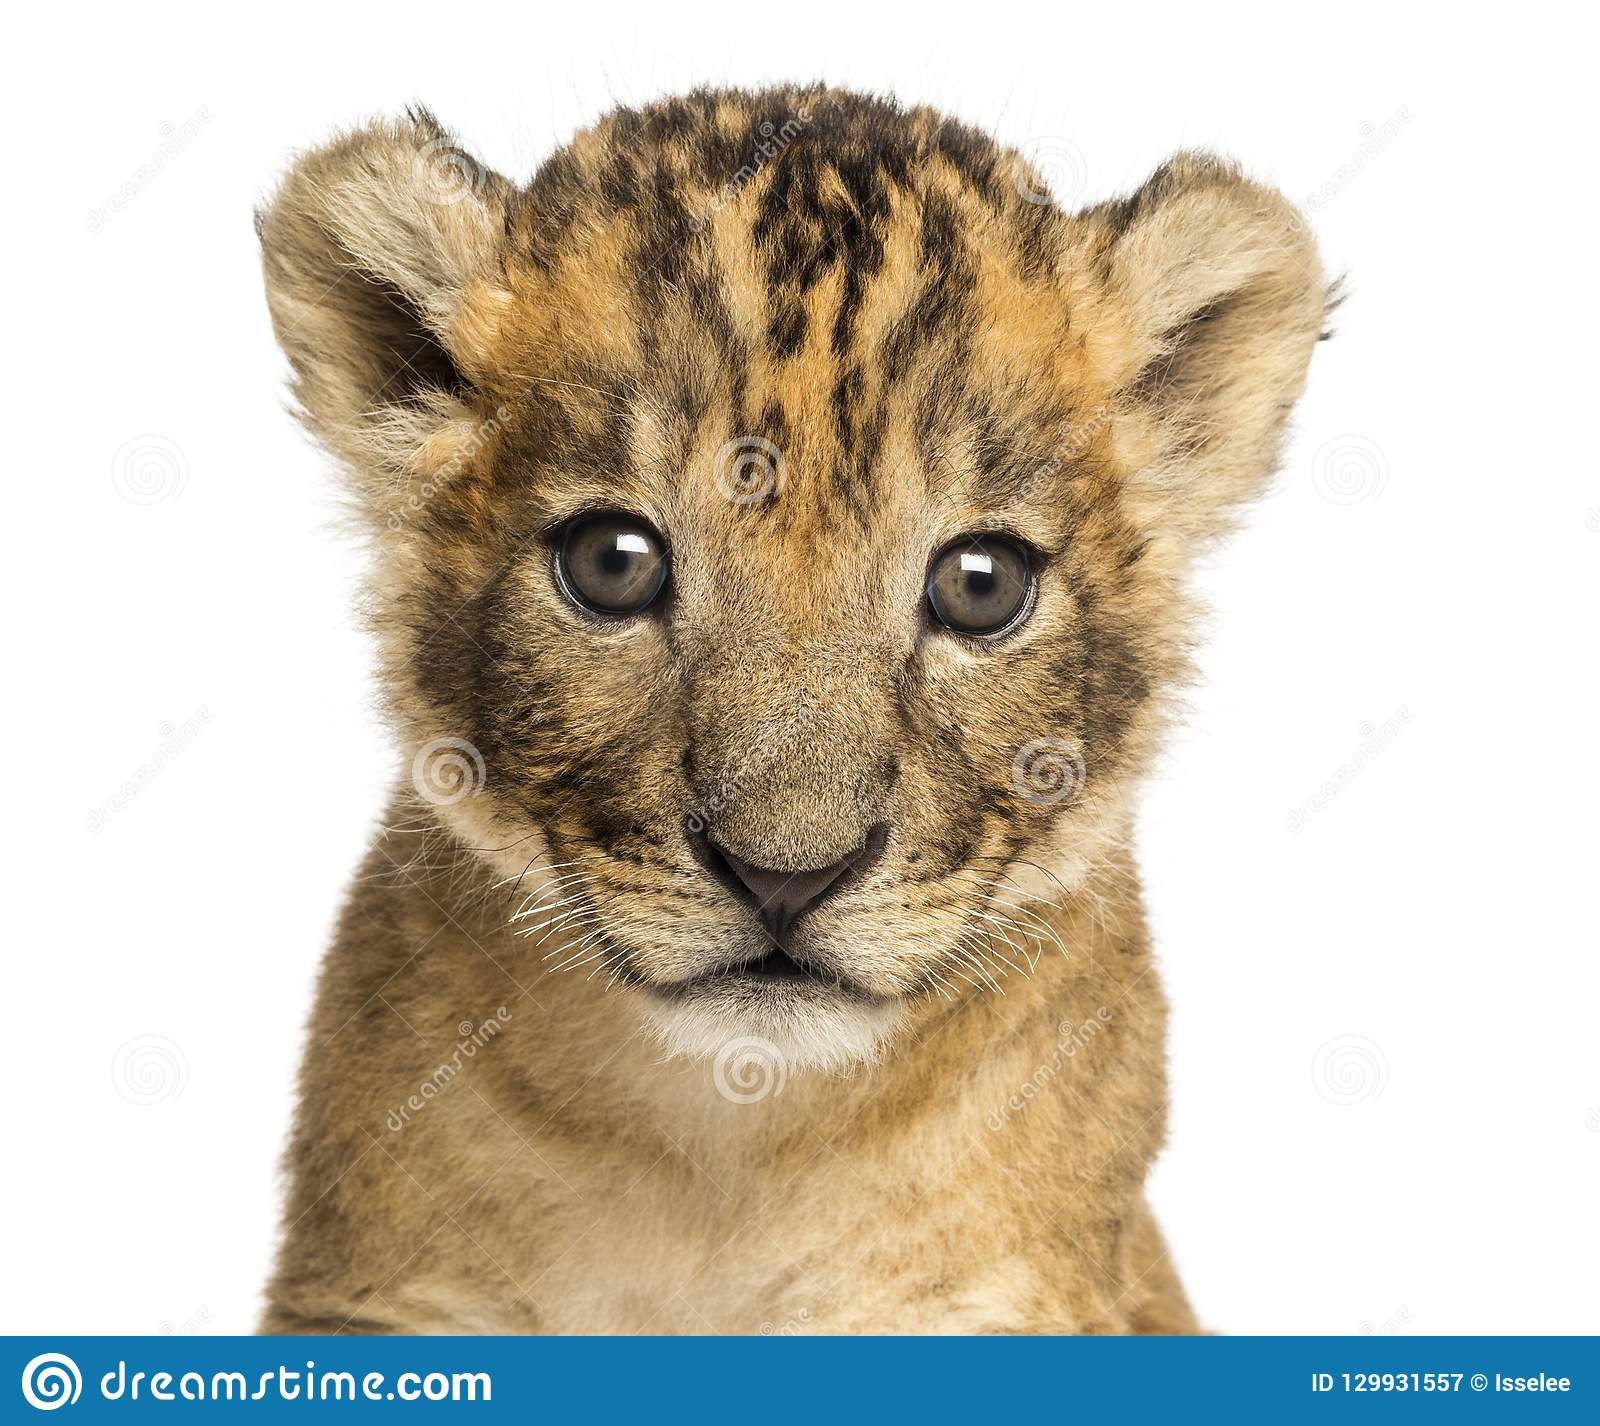 Close-up of a Lion cub, 4 weeks old, isolated